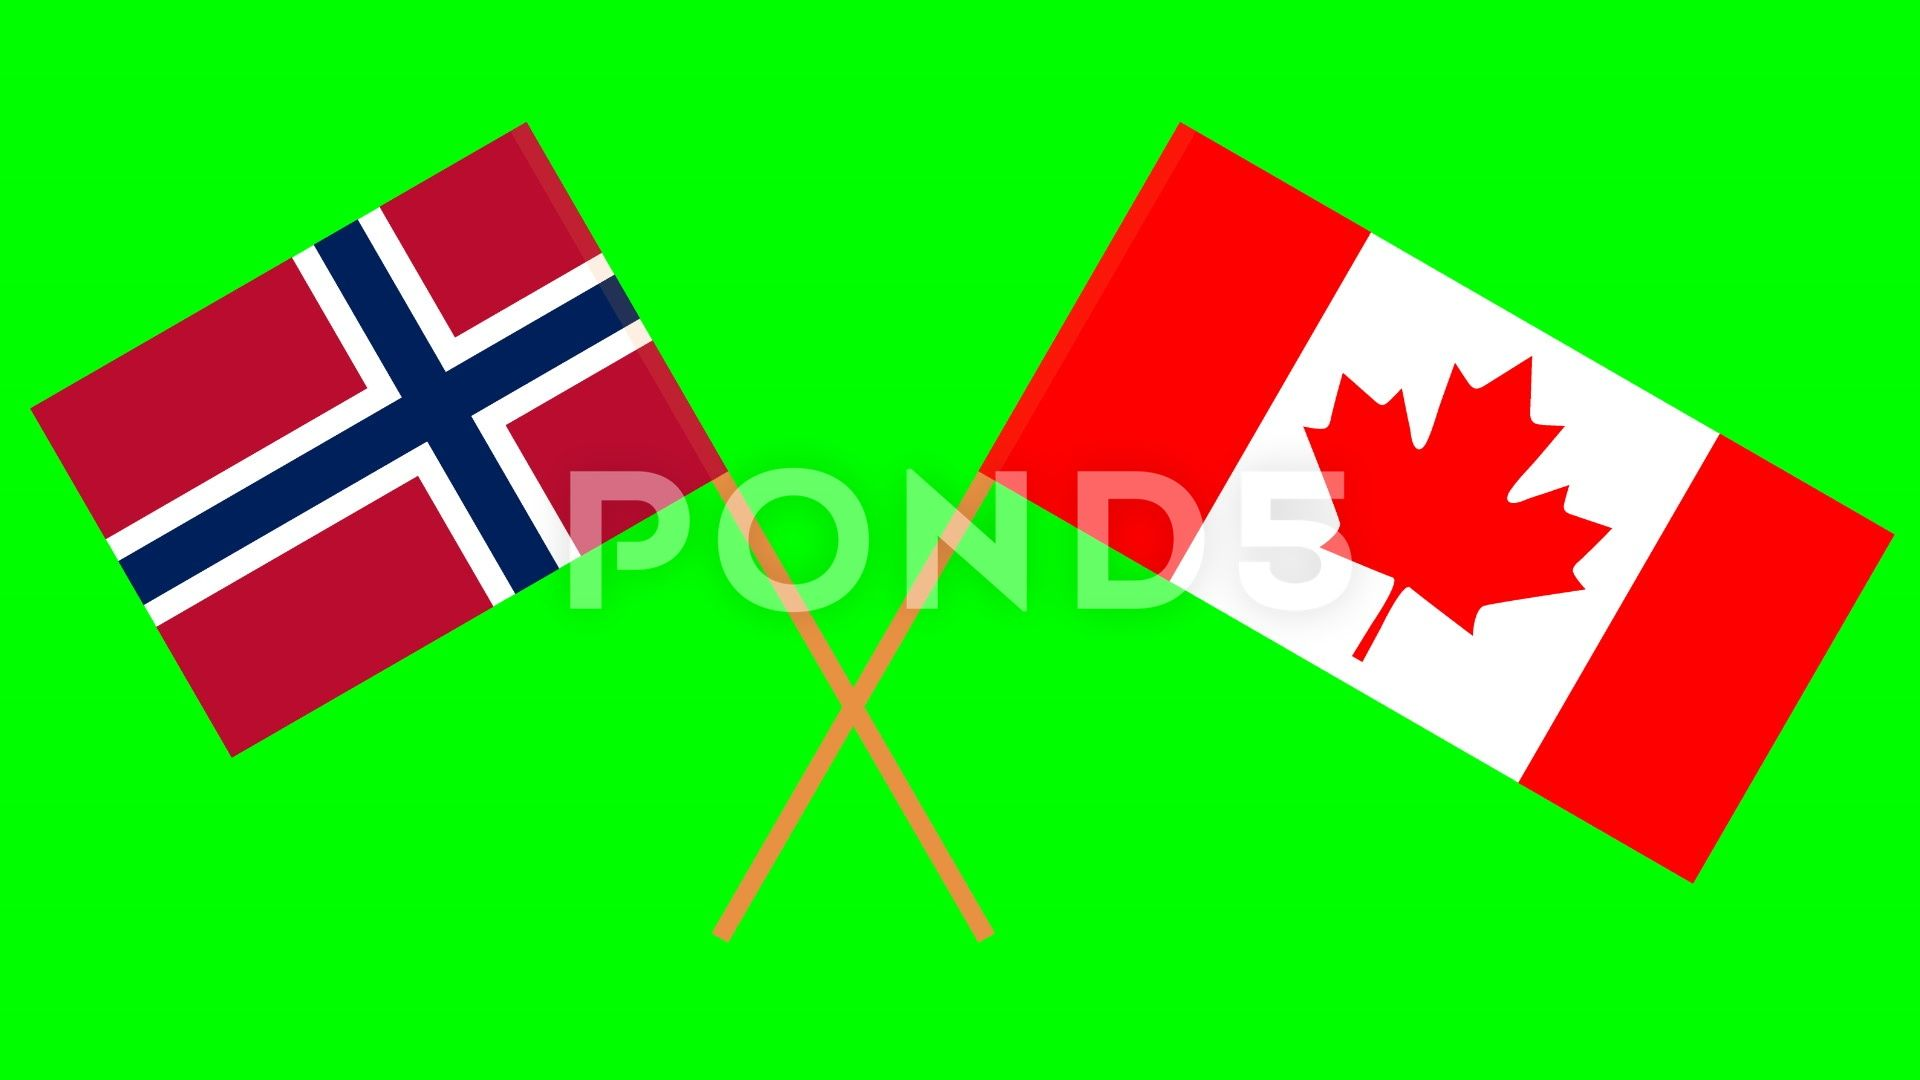 The Footage With Crossed Flags Of Norway And Canada In Front Of A Green Screen Stock Footage Ad Norway Canad Greenscreen Social Media Design Graphics Norway